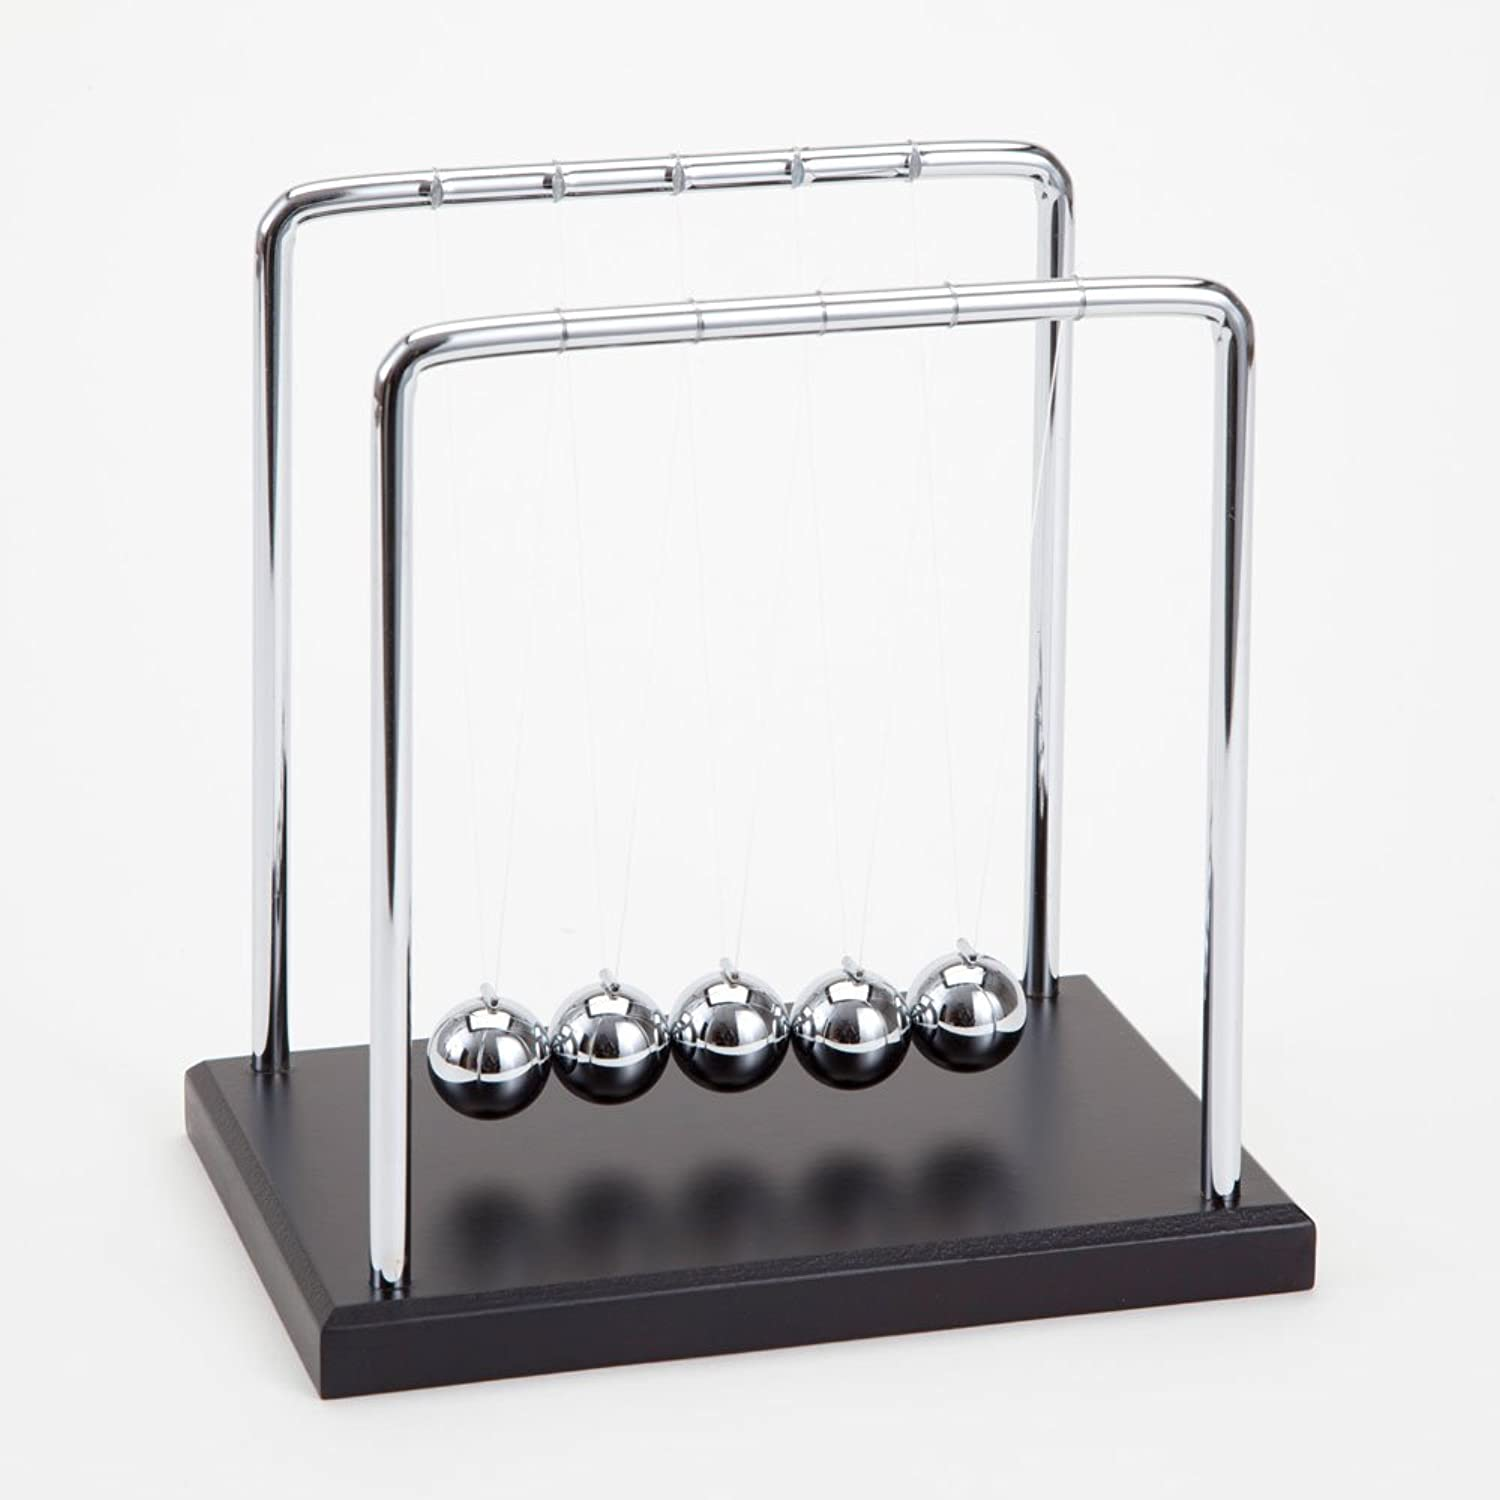 Bits and Pieces  Newton's Cradle  Iconic Isaac Newton Kinetic Toy  Office Desktop Gift  51 2 wide x 51 2 deep x 53 4 tall